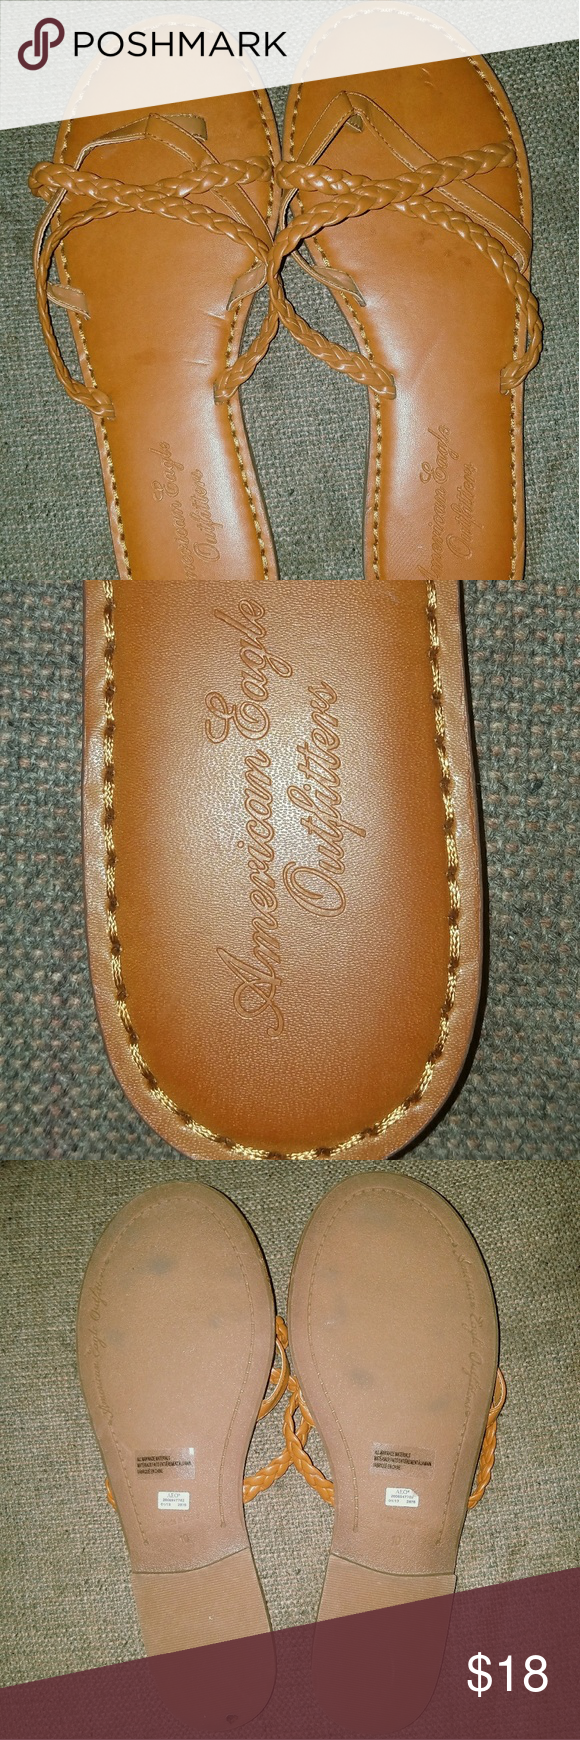 Women's Sz 10 Leather American Eagle Sandals These are brand new without tags. Size 10 in womens. American Eagle Outfitters Shoes Sandals